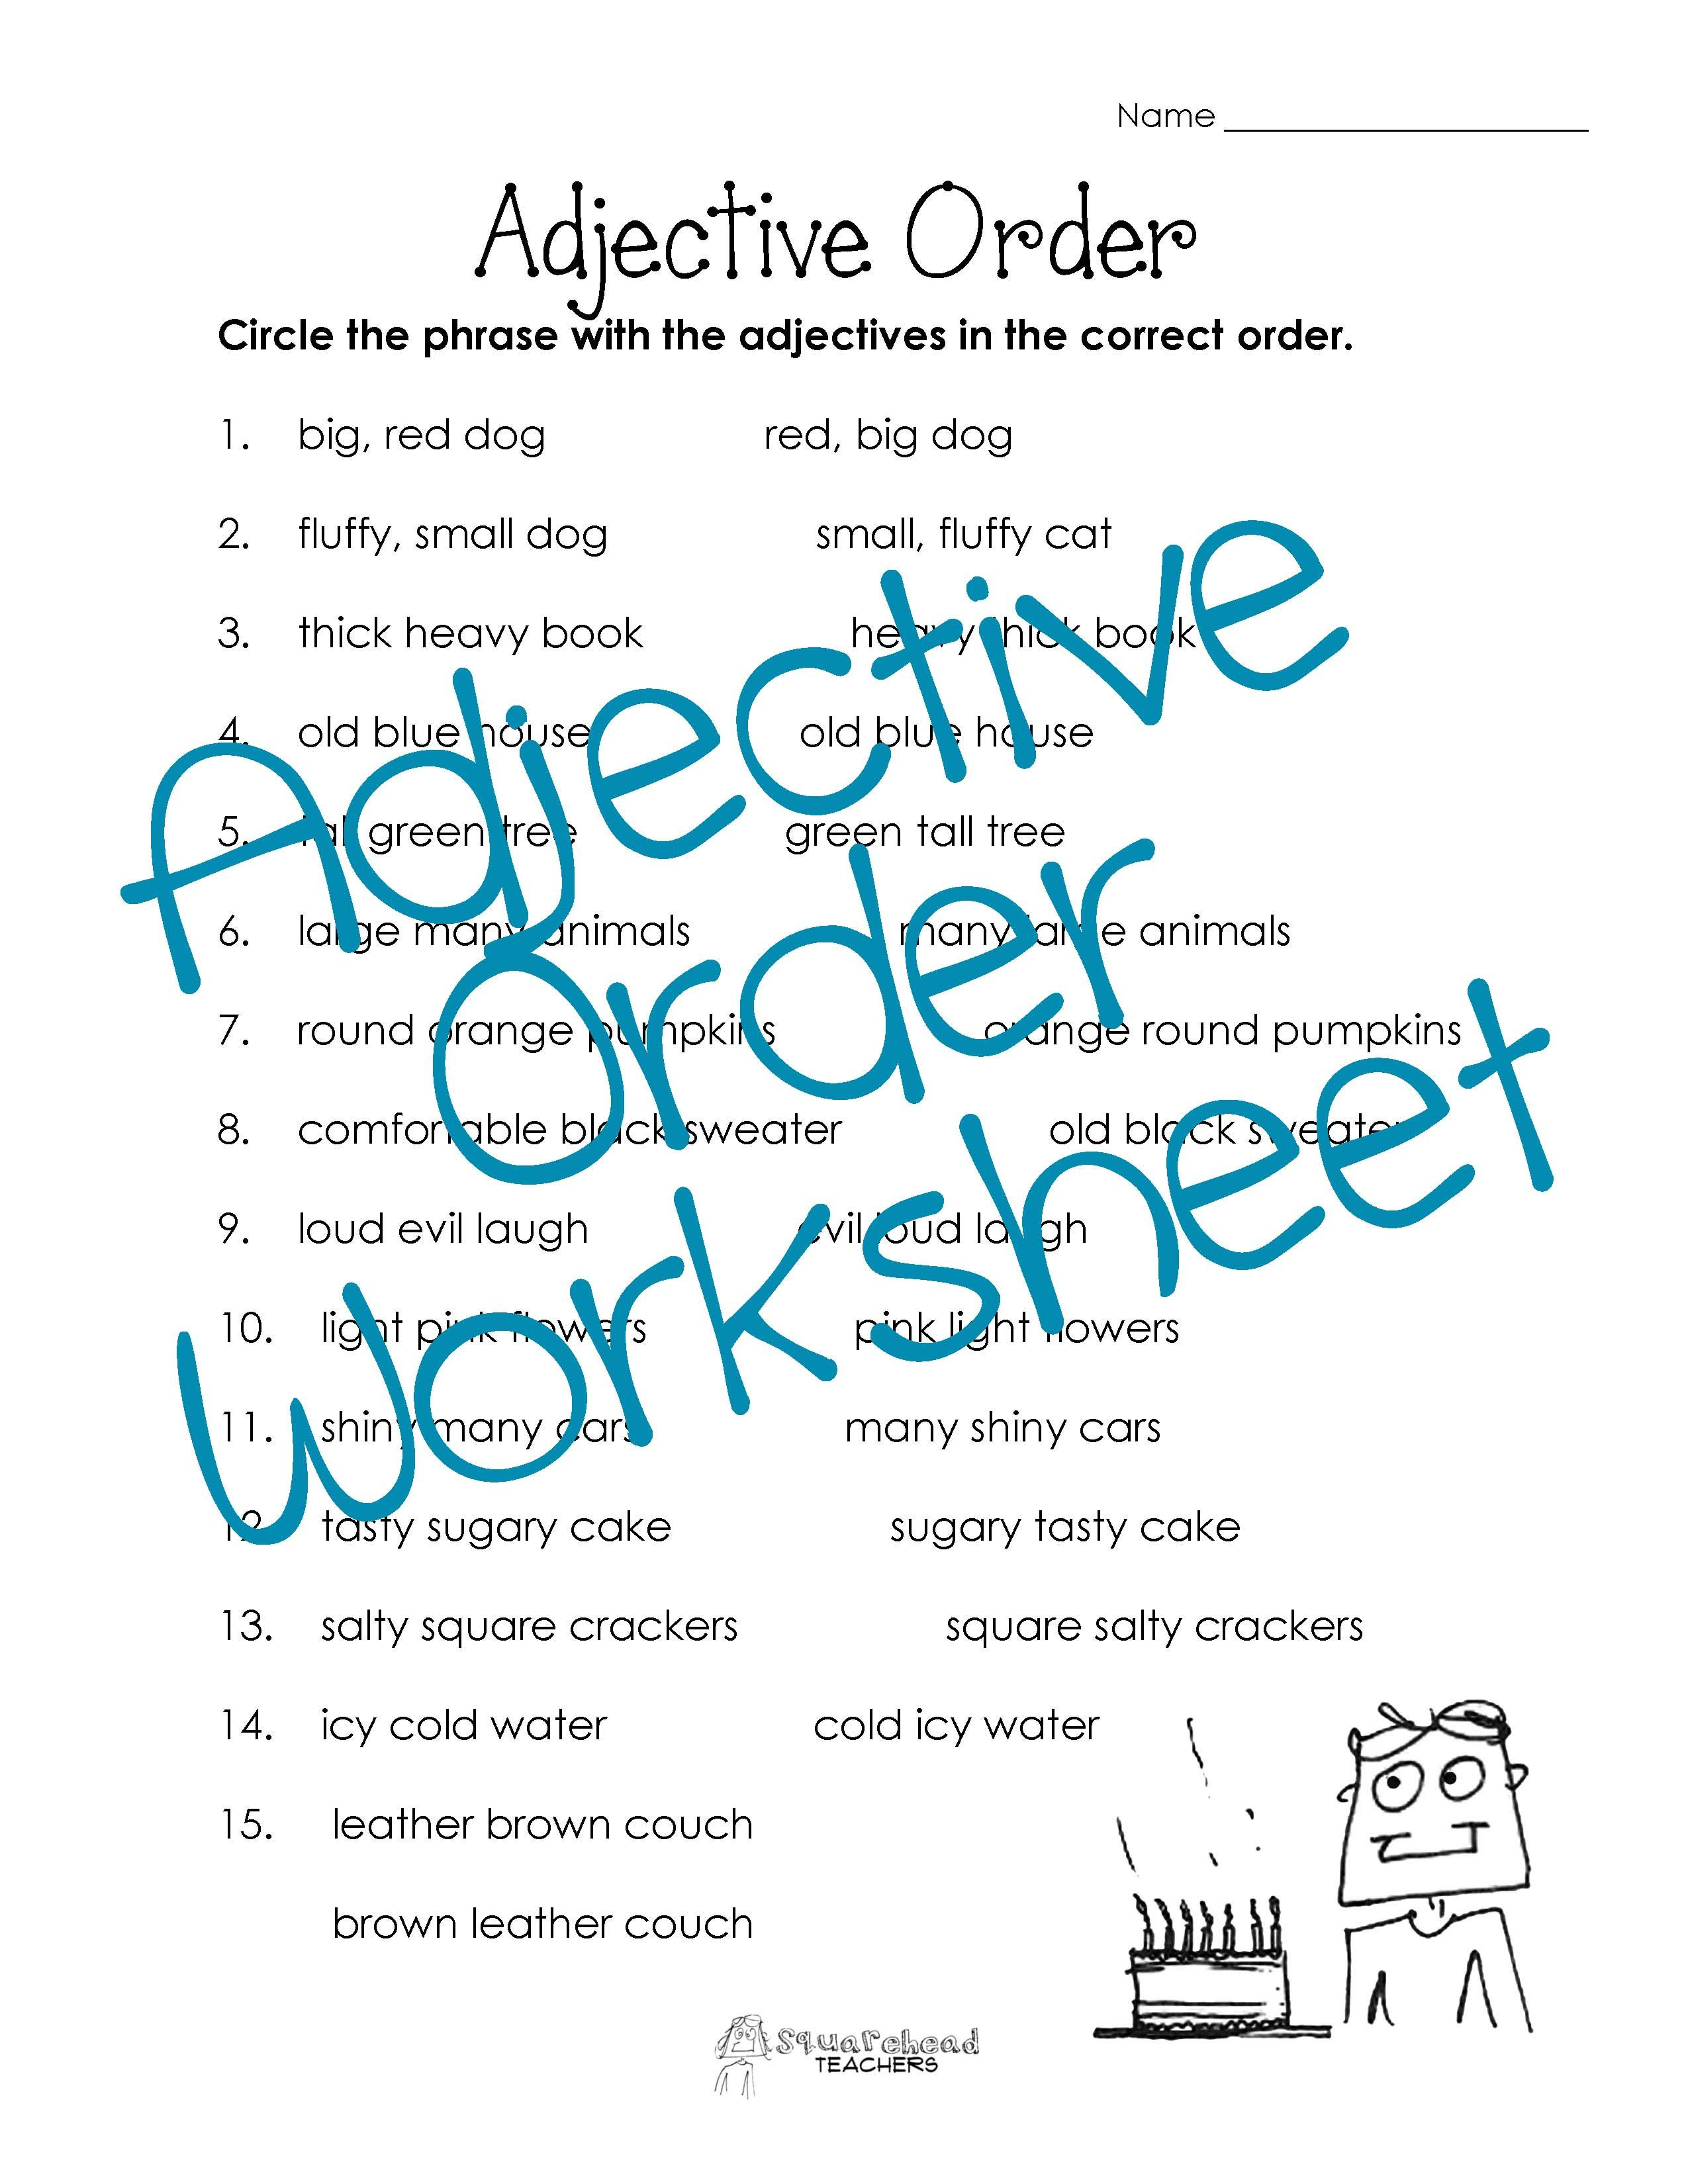 Worksheet Adjectives Worksheet For 1st Grade 1000 images about educational adjectives on pinterest worksheets free and parts of speech